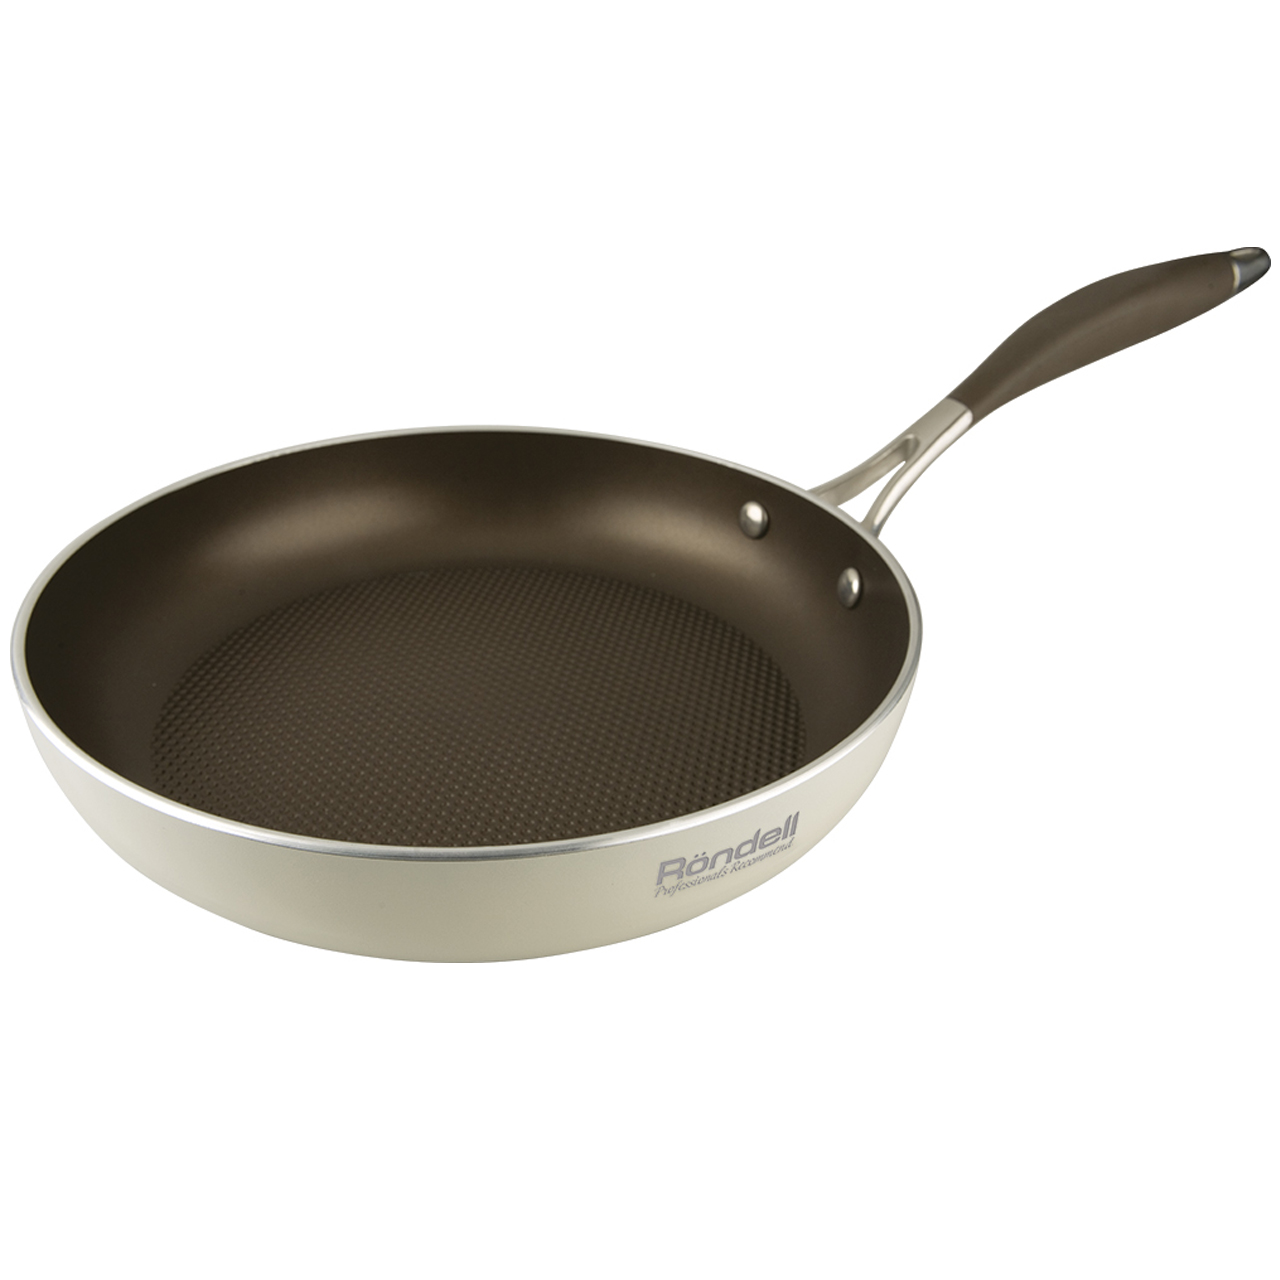 Frying pan without lid Rondell Latte 26 cm RDA-284 все цены